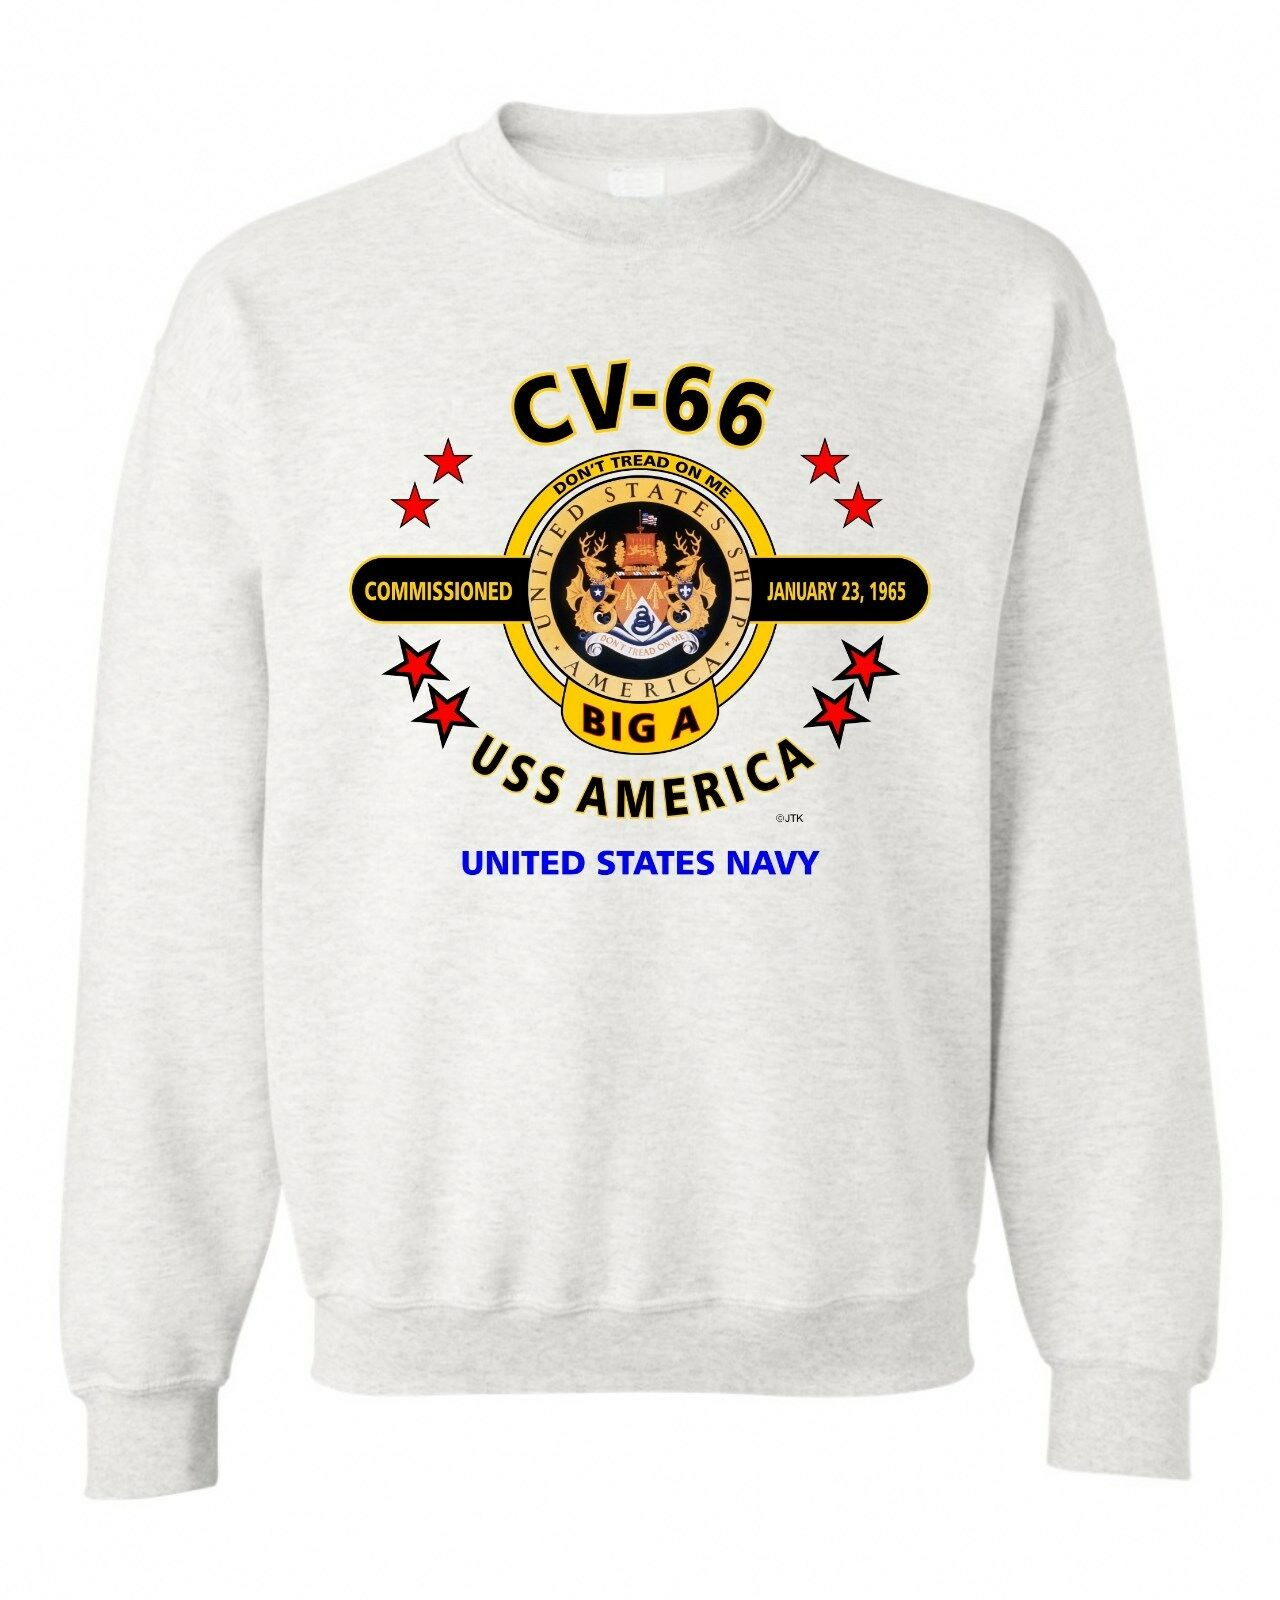 USS AMERICA CV-66  THE BIG A  WORLD'S SWEATSHIRT GREATEST NAVY  SWEATSHIRT WORLD'S 6d8d75